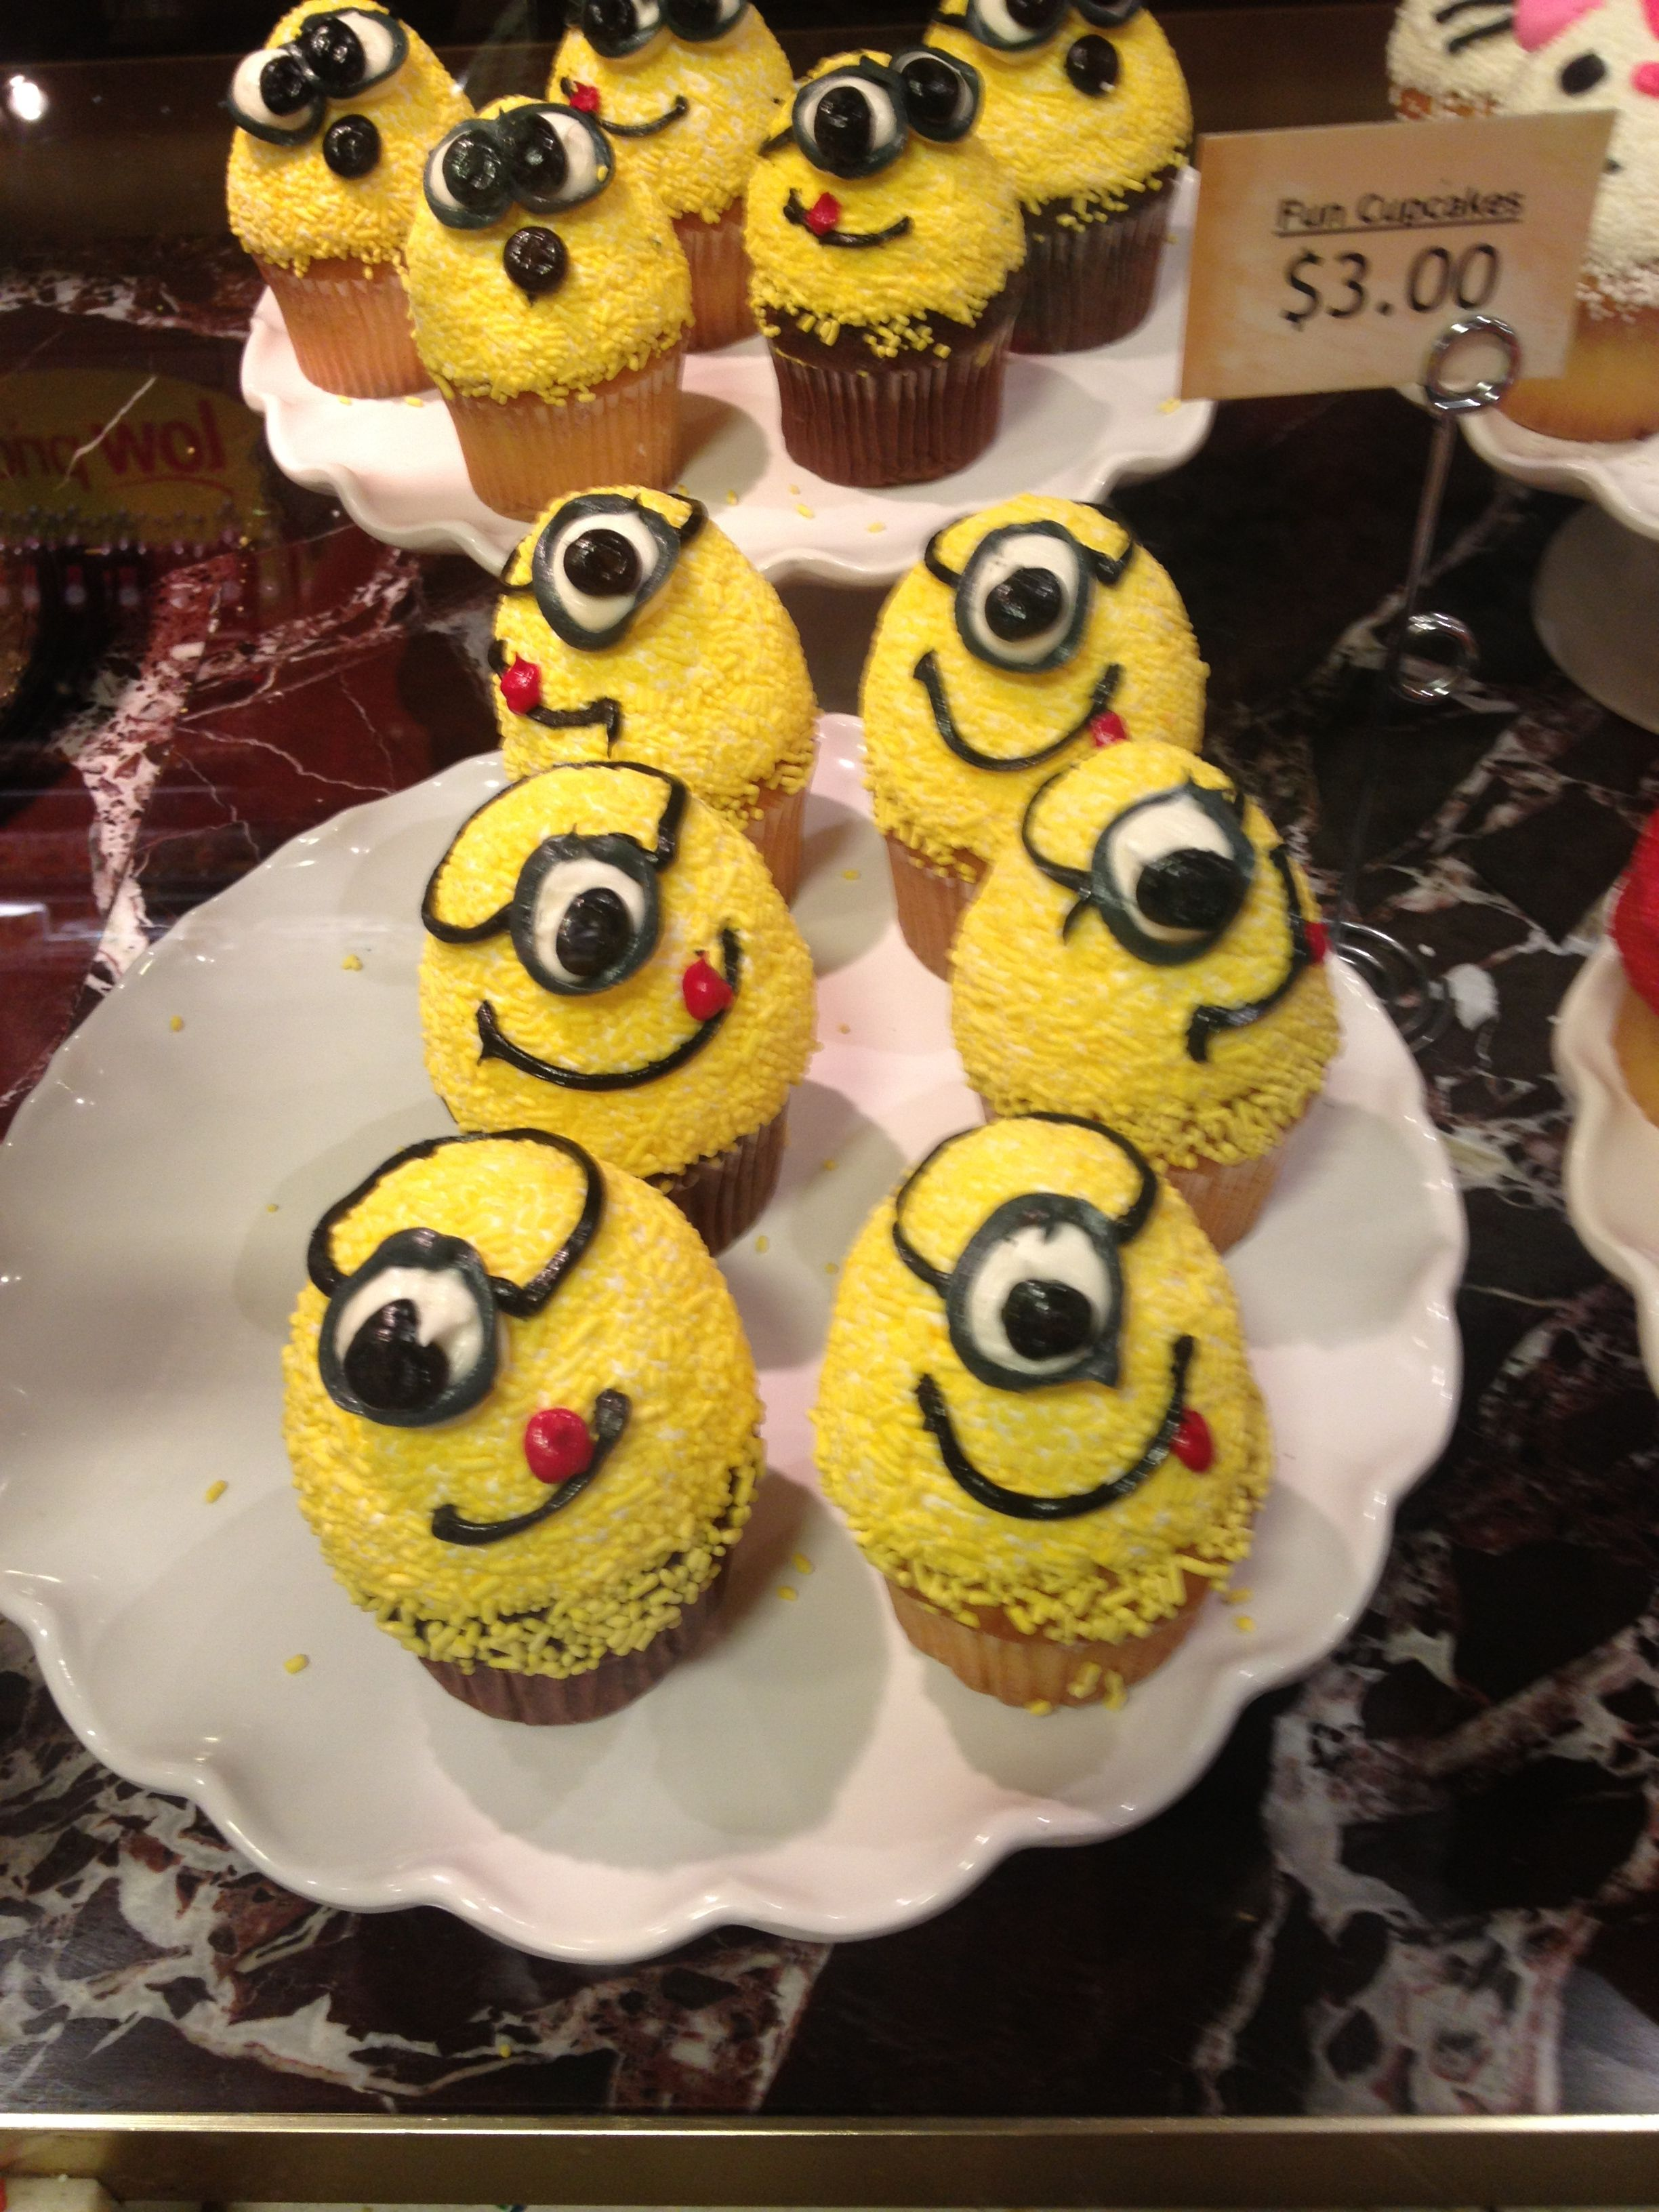 Minion cupcakes, adorable